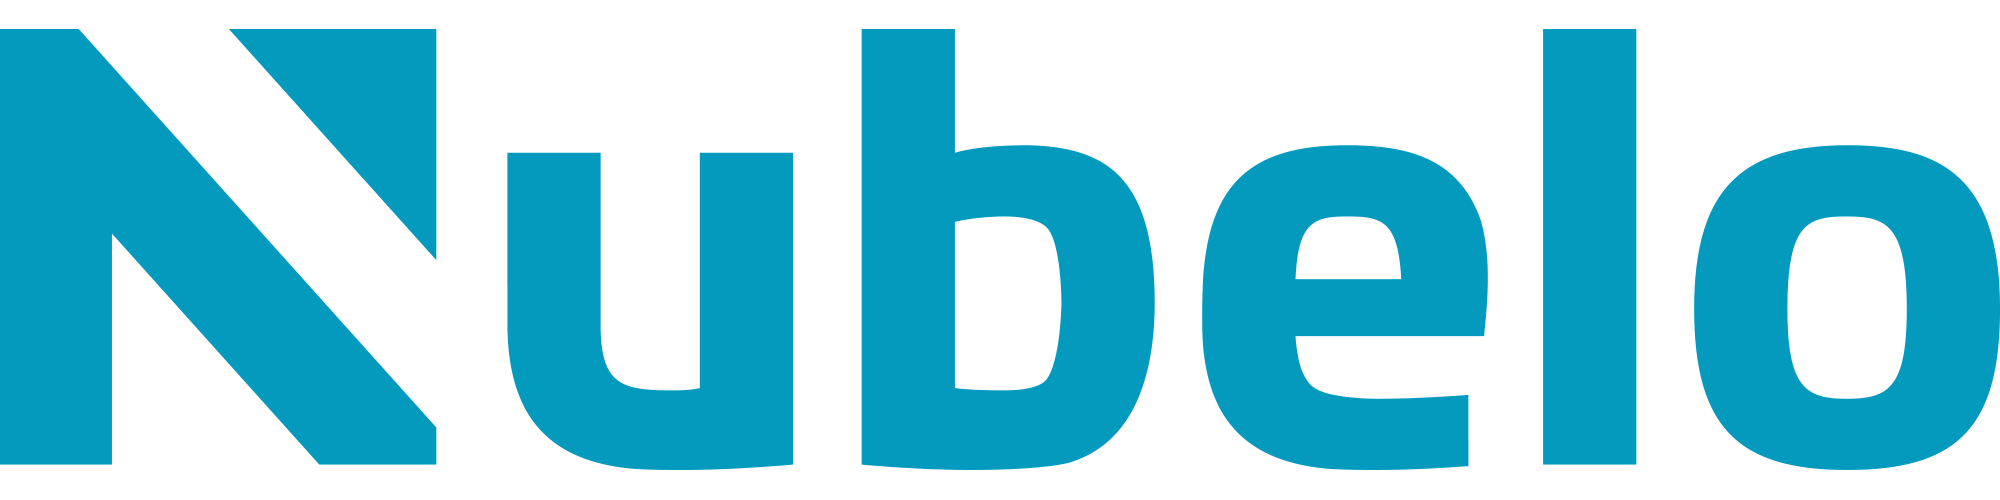 logo-nubelo-nuevo-azul.png